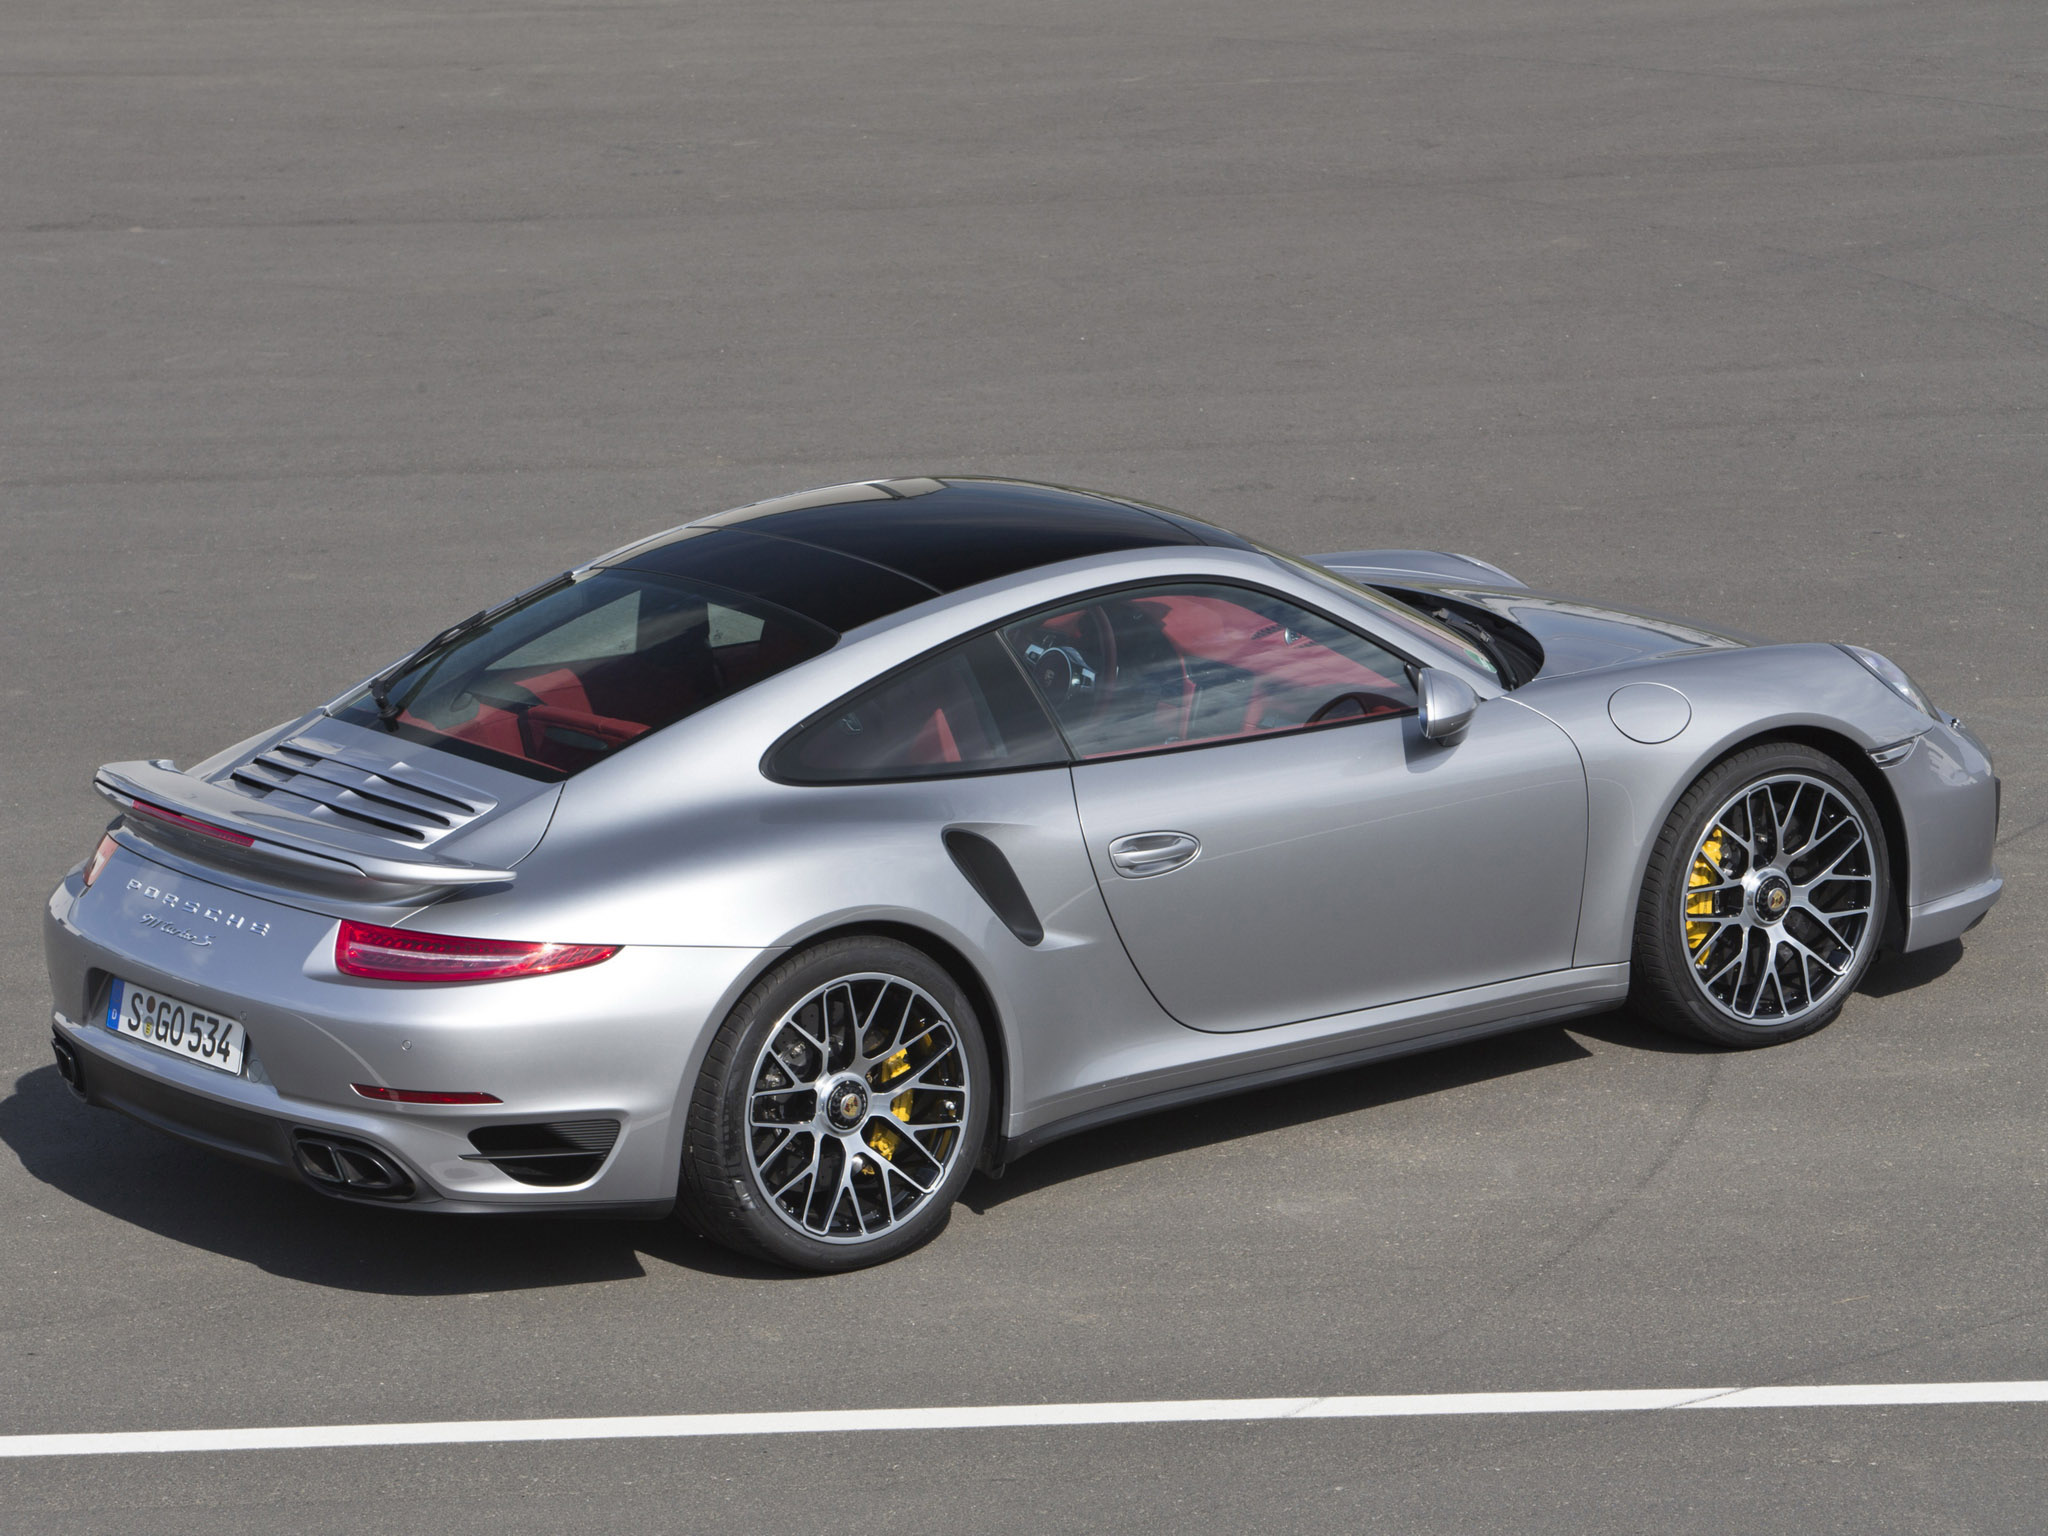 2013 porsche 911 turbo s 991 ge wallpaper 2048x1536 141572 wallpaperup